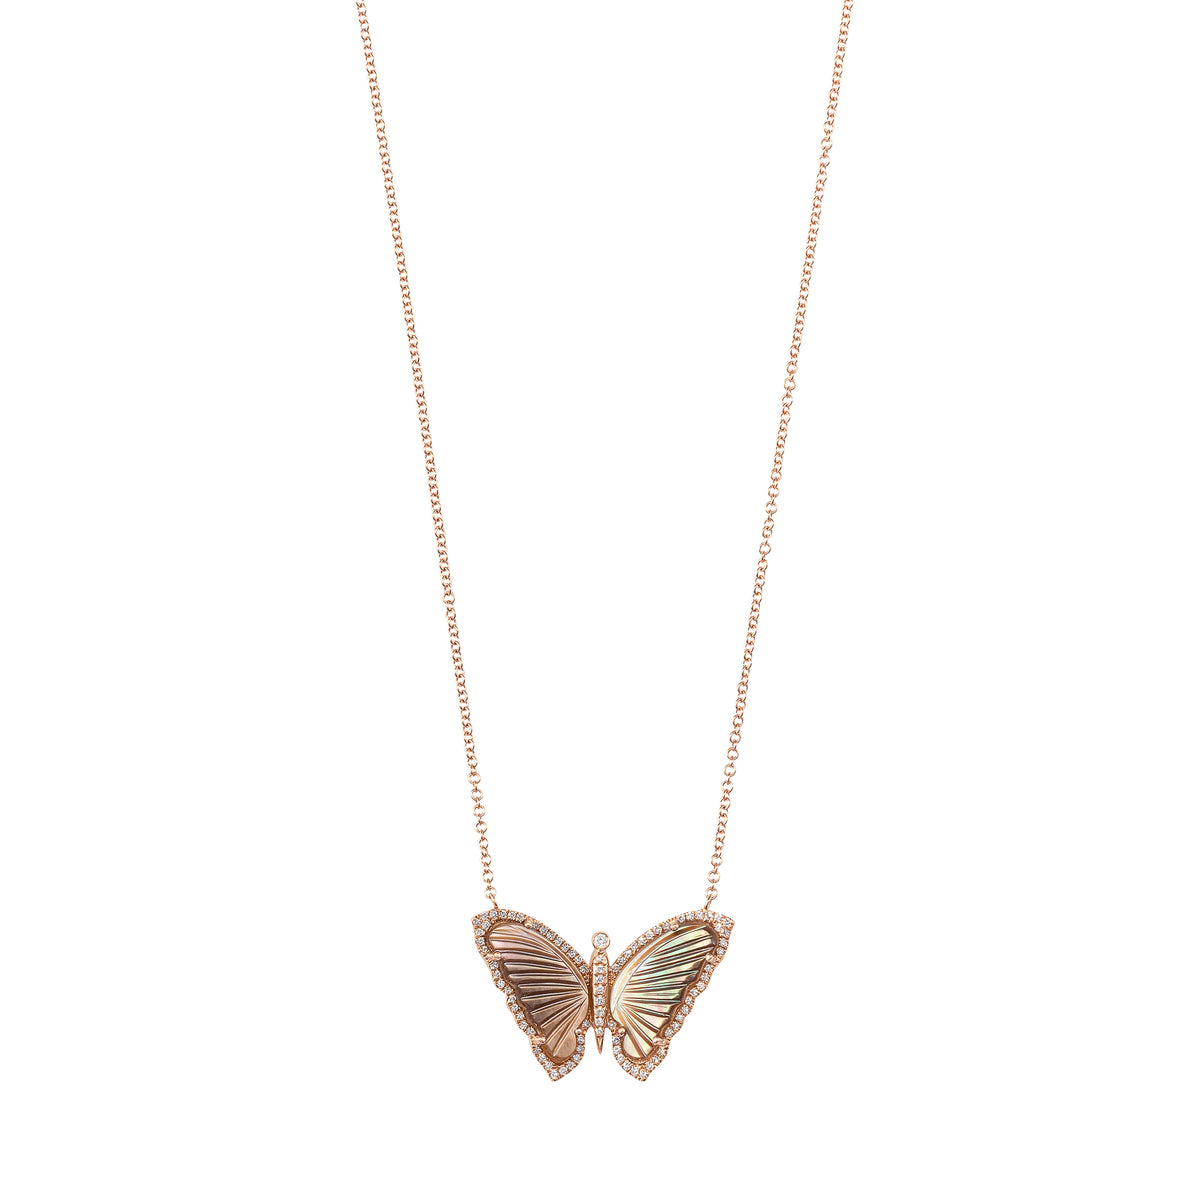 Black Mother of Pearl Butterfly Necklace